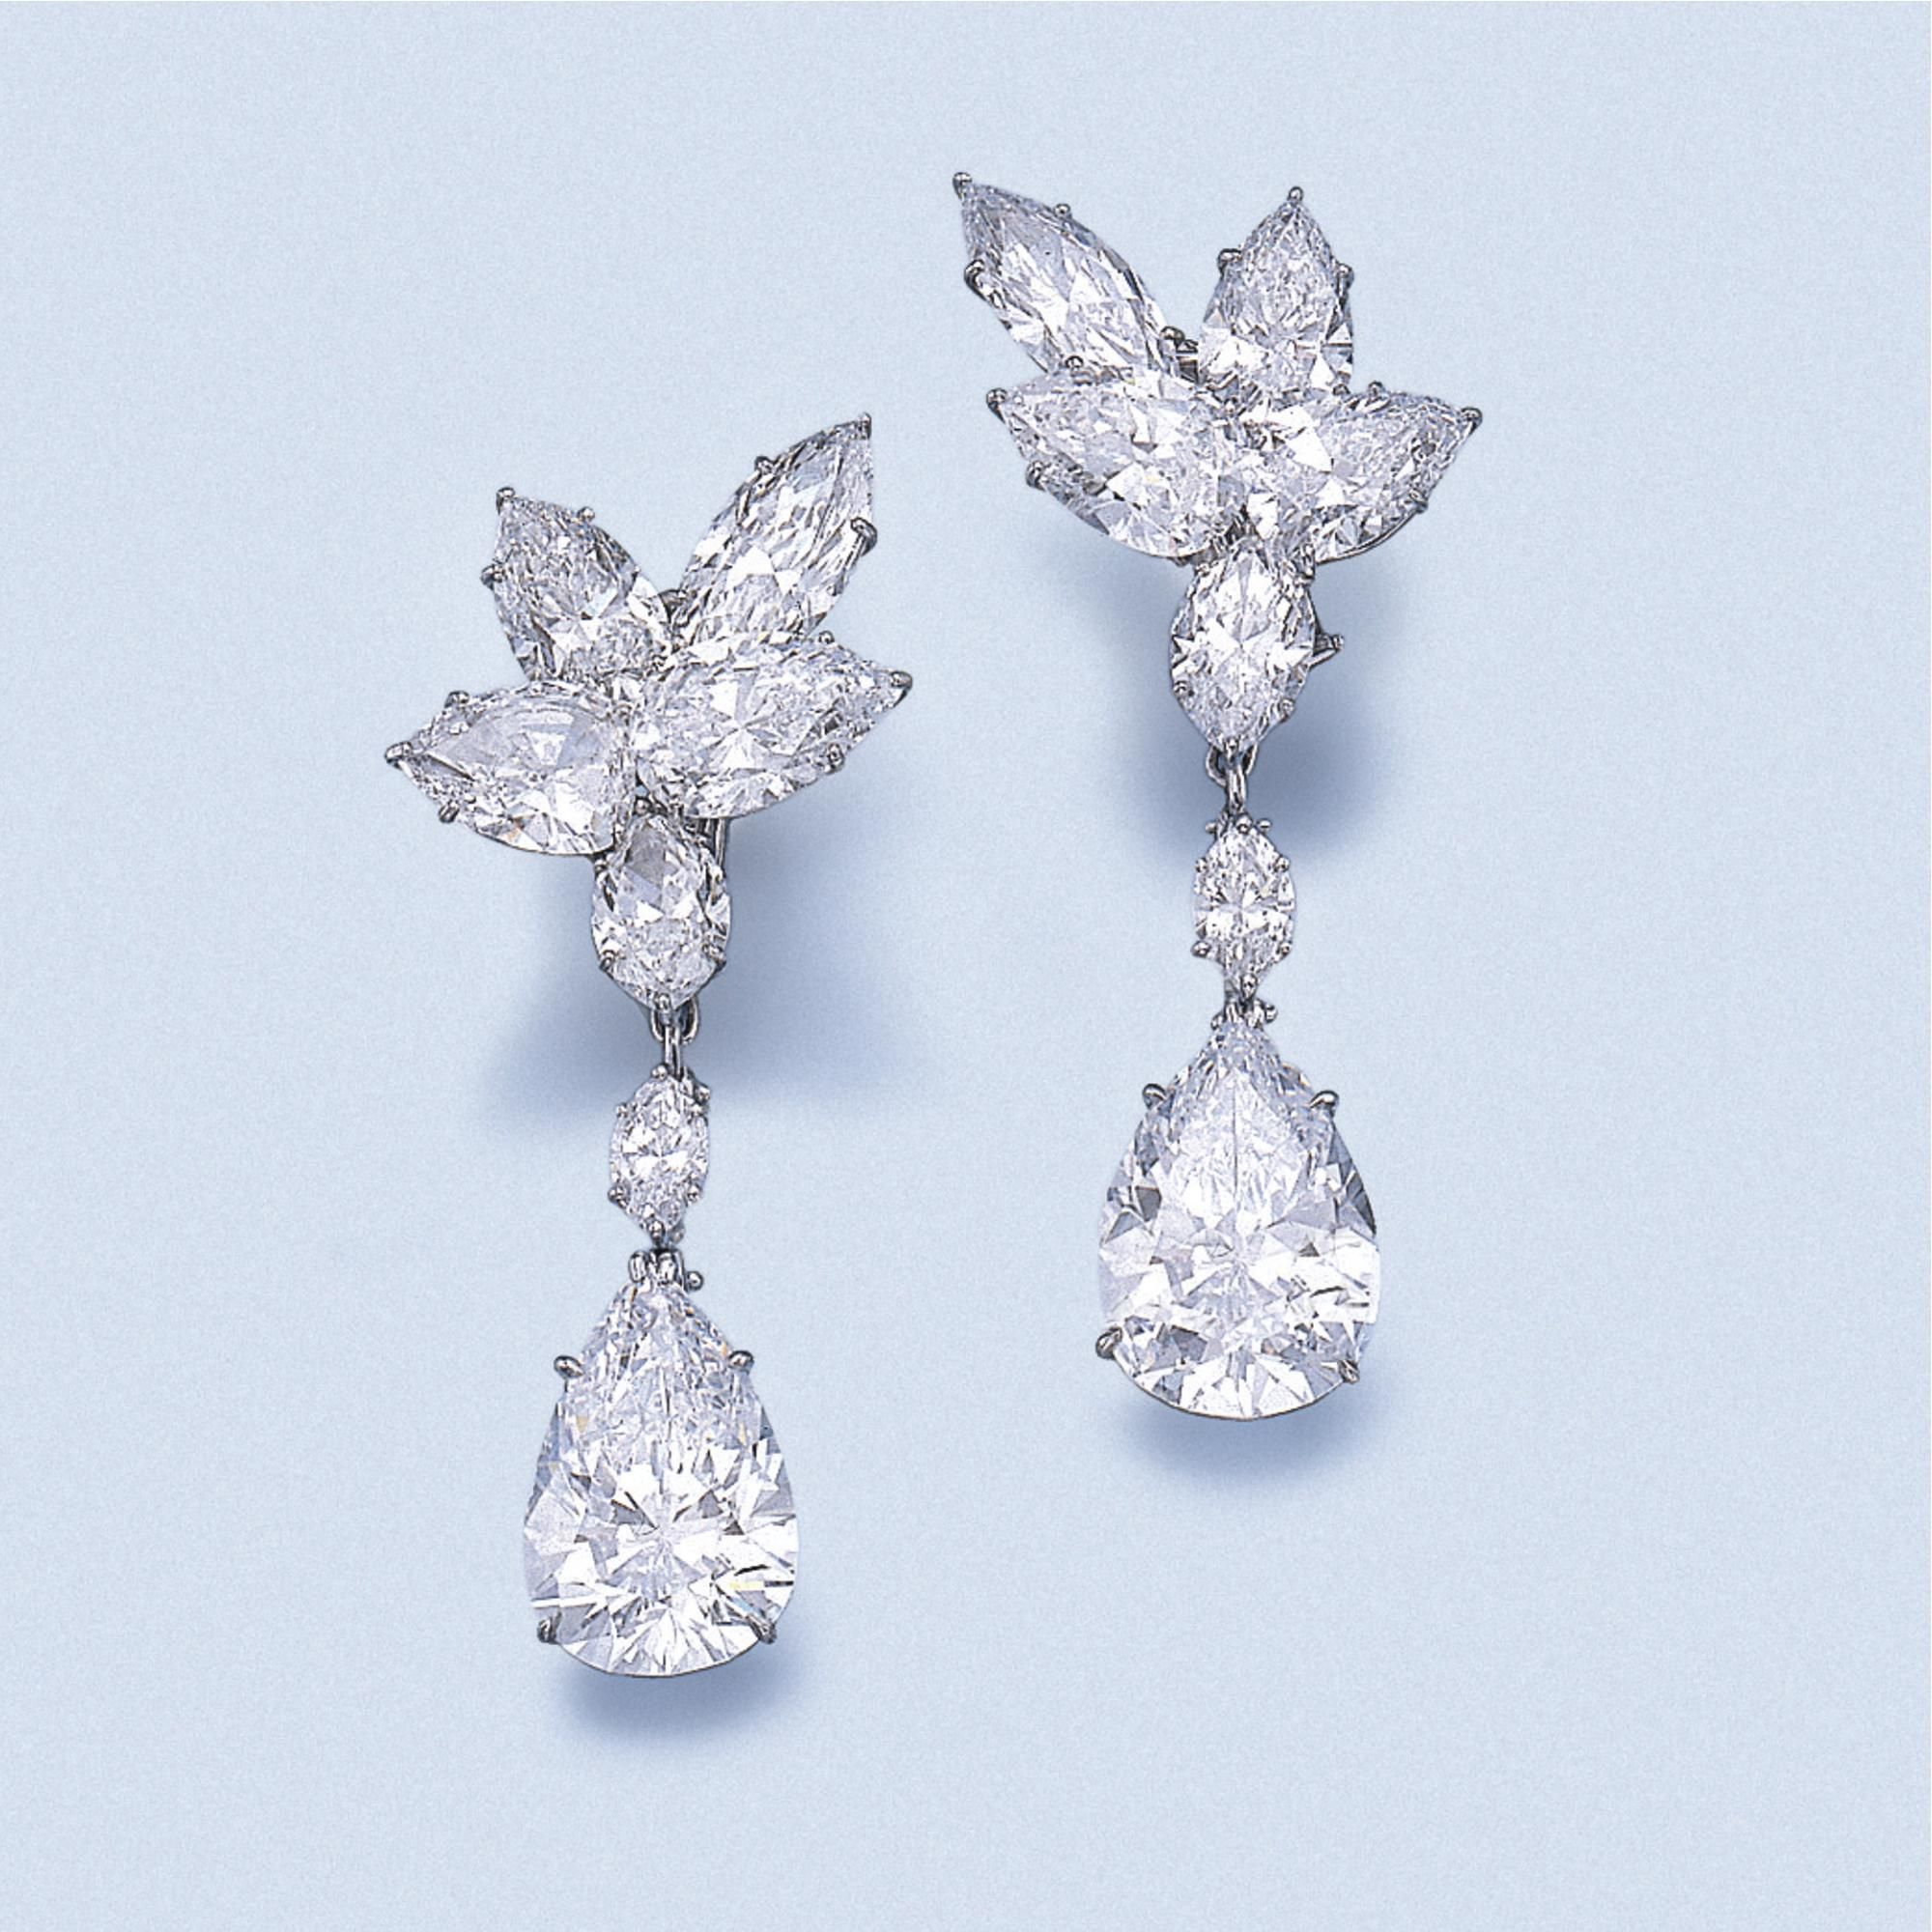 IMPORTANT PAIR OF DIAMOND PENDENT EARRINGS, HARRY WINSTON, CIRCA 1975. Each surmount designed as a cluster of pear- and marquise-shaped diamonds, two of the pear-shaped stones weighing respectively 2.24 and 2.76 carats, suspending a detachable pendant set with a marquise- and a pear-shaped diamond, the pear-shaped stones weighing respectively 8.43 and 8.91 carats, mounted in platinum, unsigned, maker's marks for Jacques Timey.